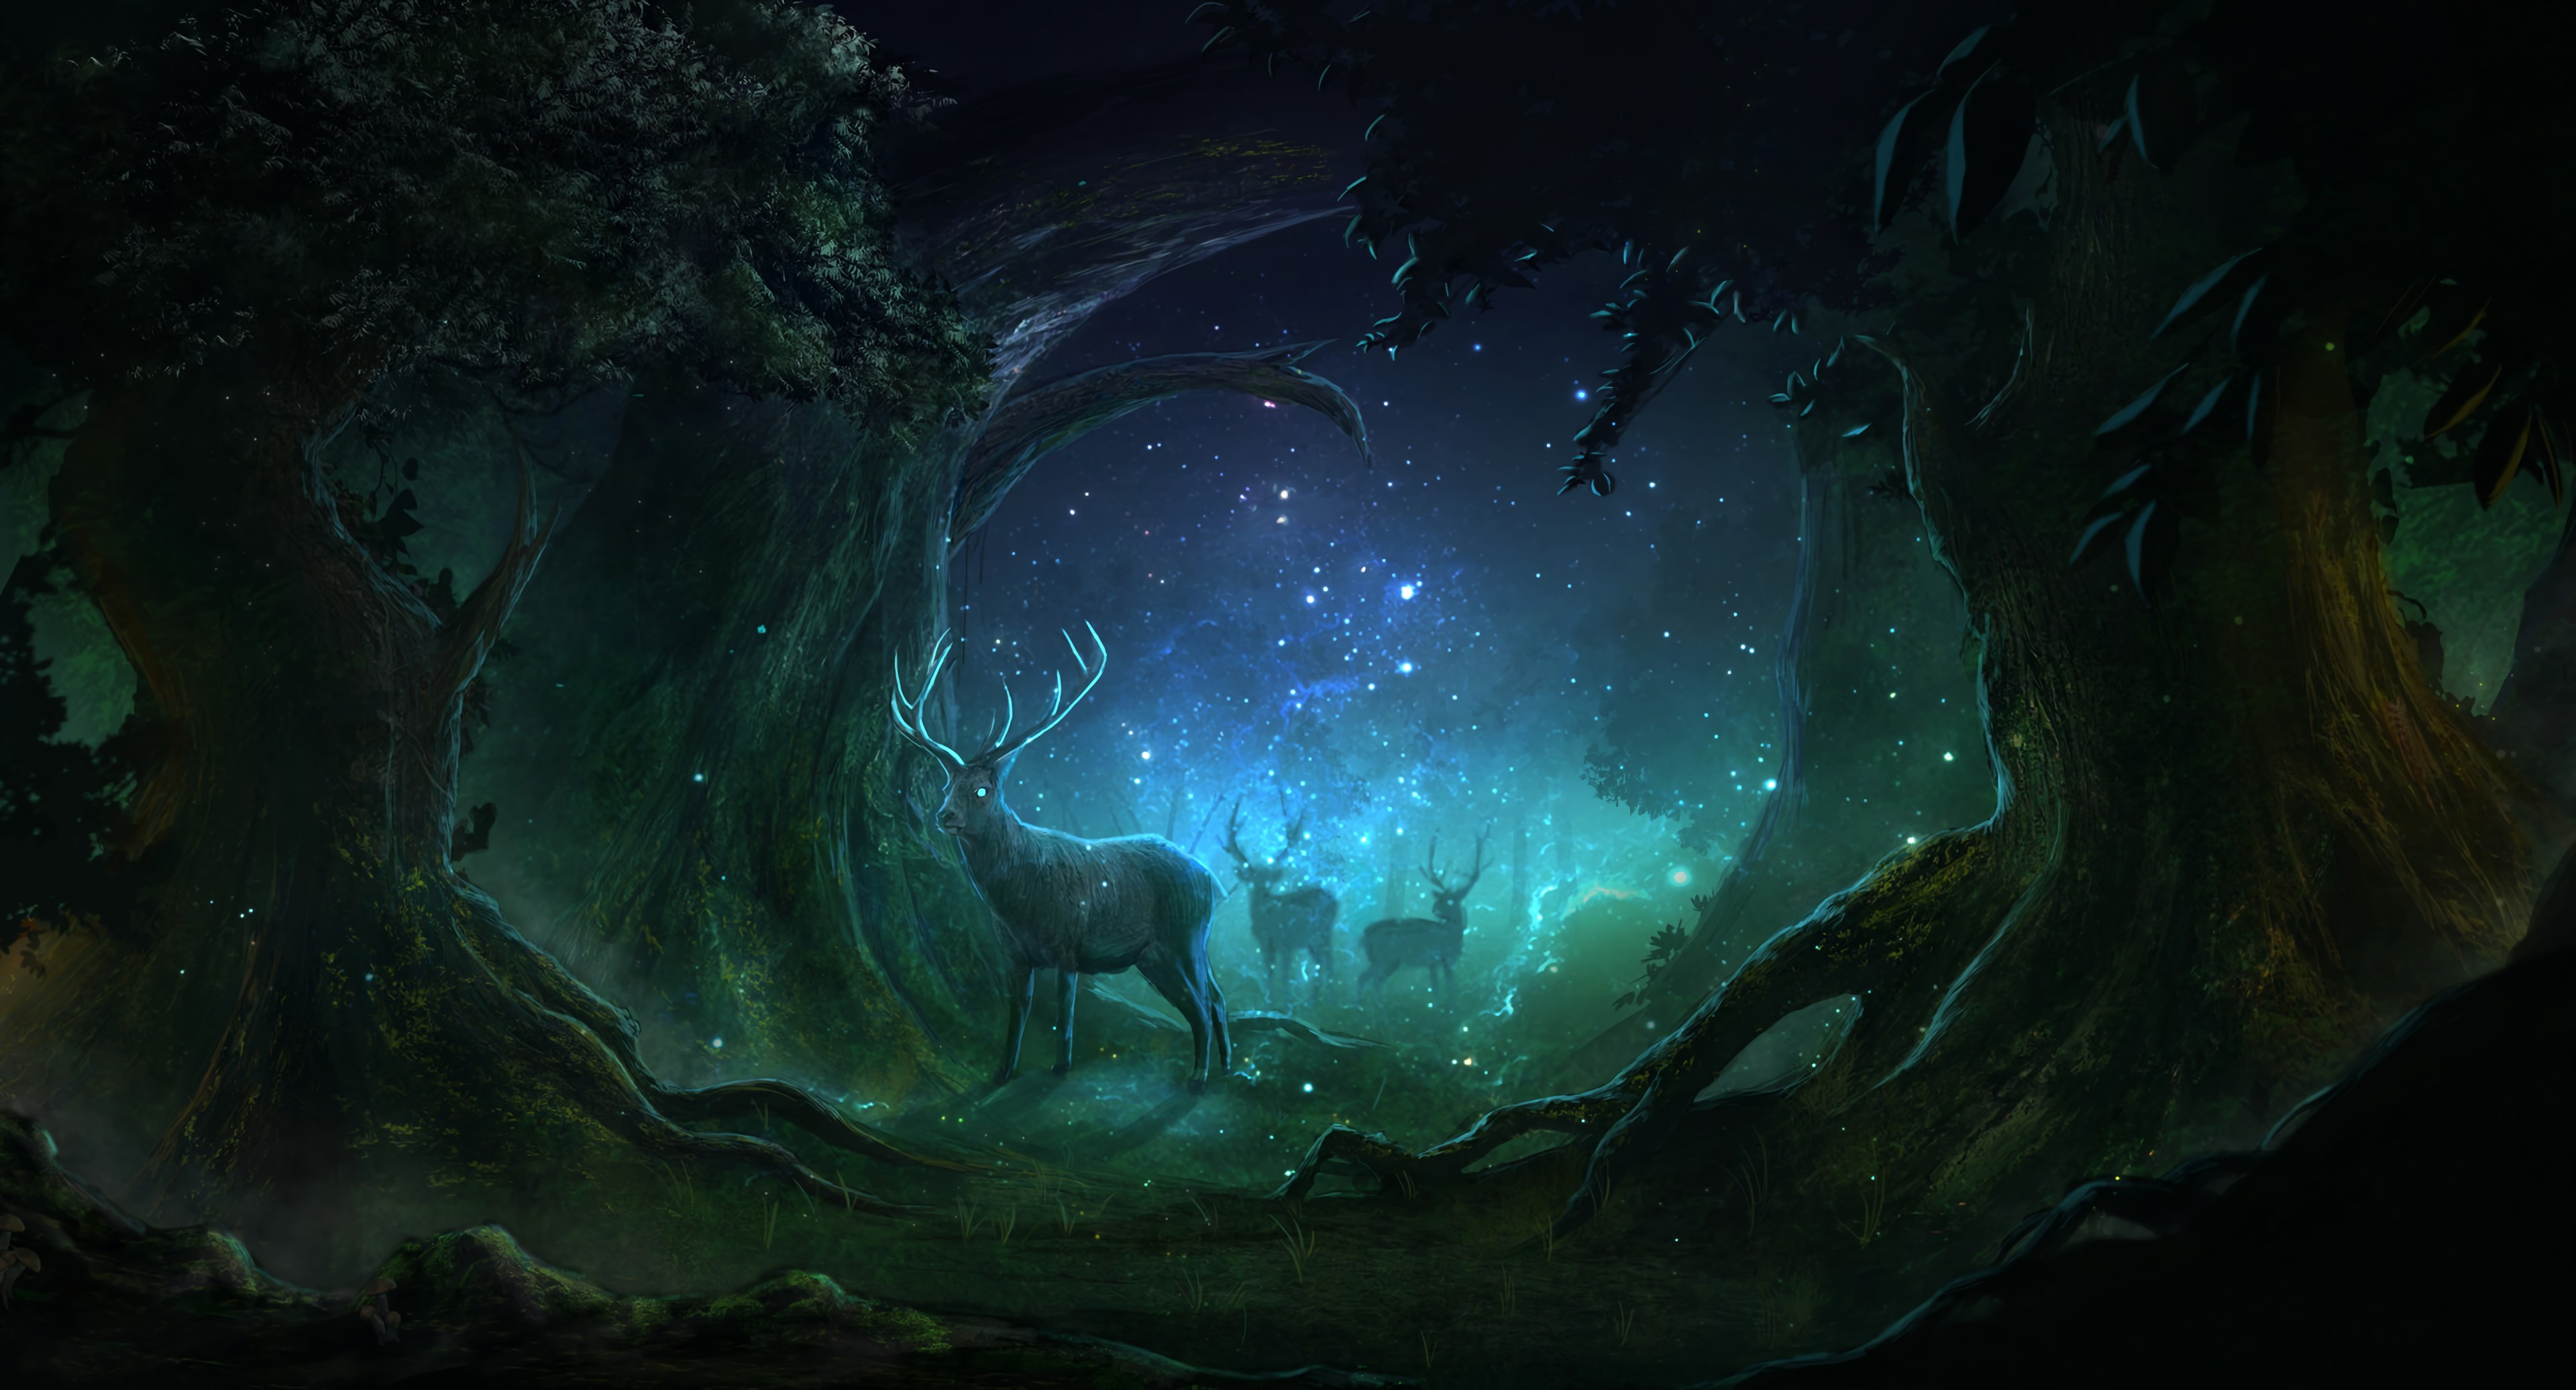 89824 download wallpaper Art, Deers, Forest, Night, Lights, Magic screensavers and pictures for free